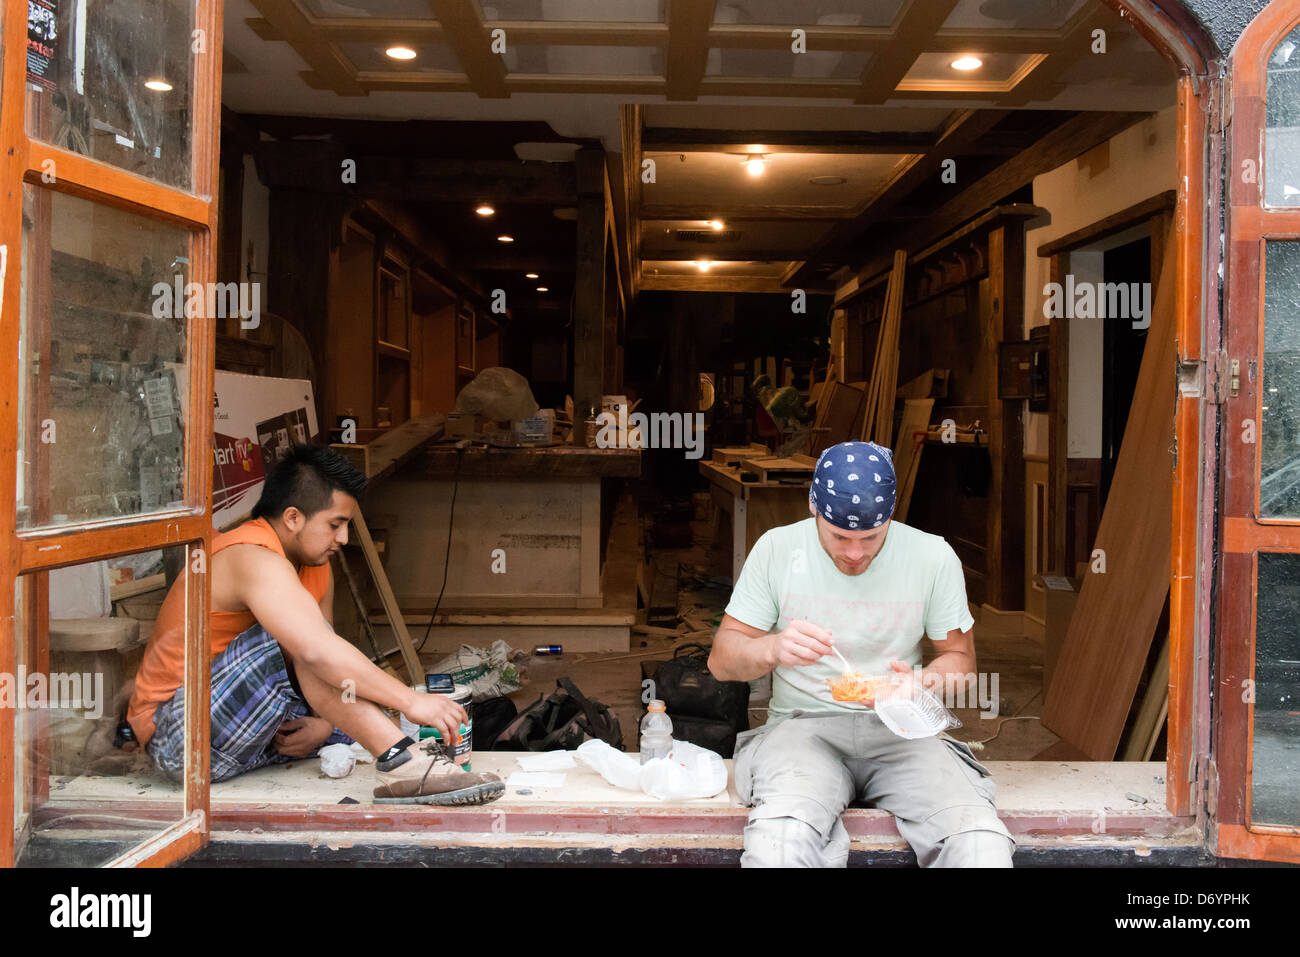 Tradesmen stop for lunch while working on a construction site in Lower Manhattan. - Stock Image